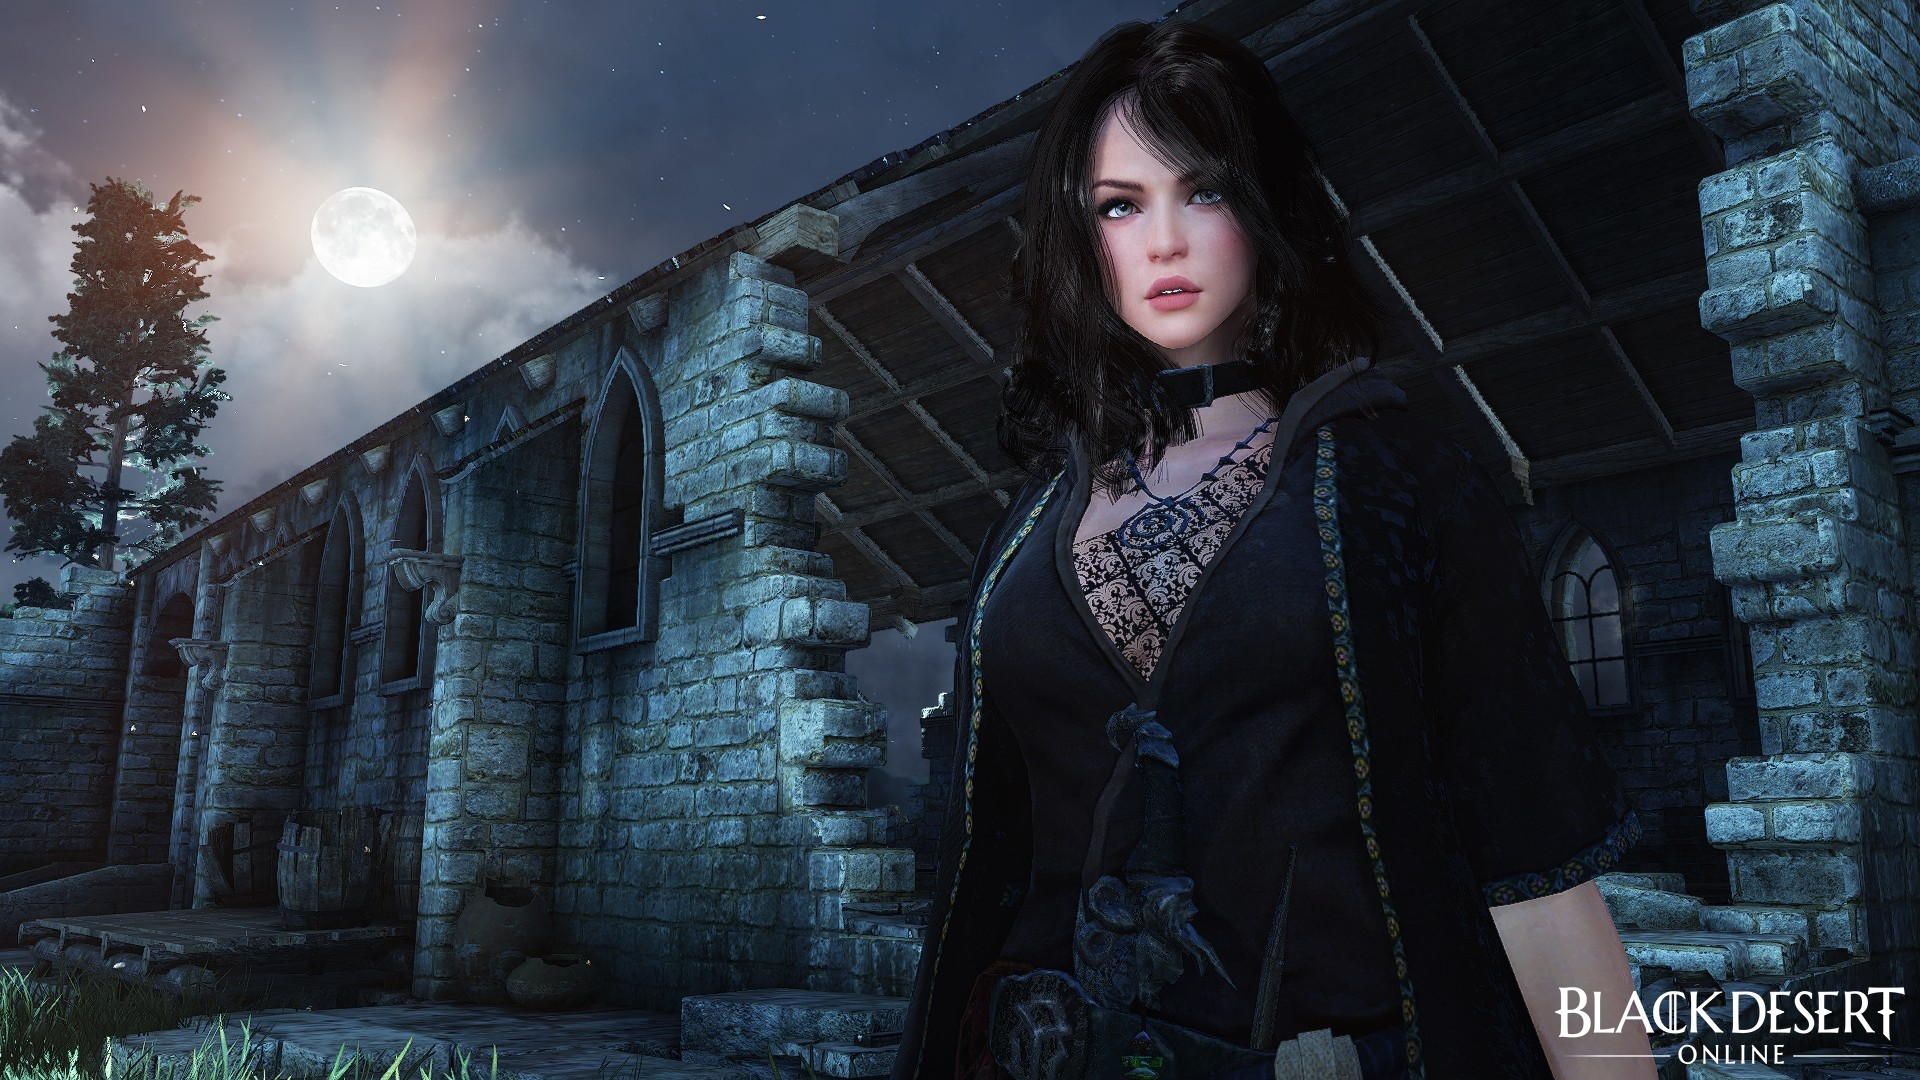 Black Desert Online Preview: a Beautiful World that Doesn't Hold Your Hand